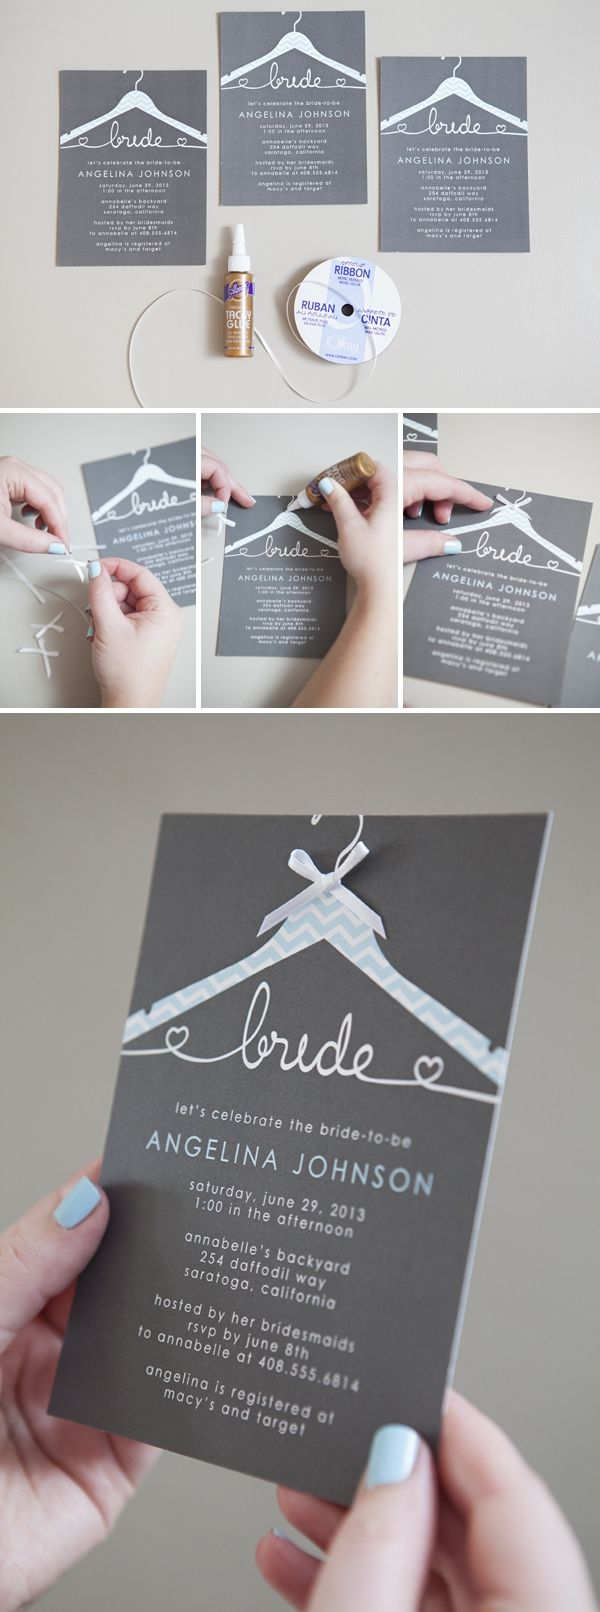 bridal shower invitations registry etiquette%0A How To Embellish   Store Bought   Wedding Invitations